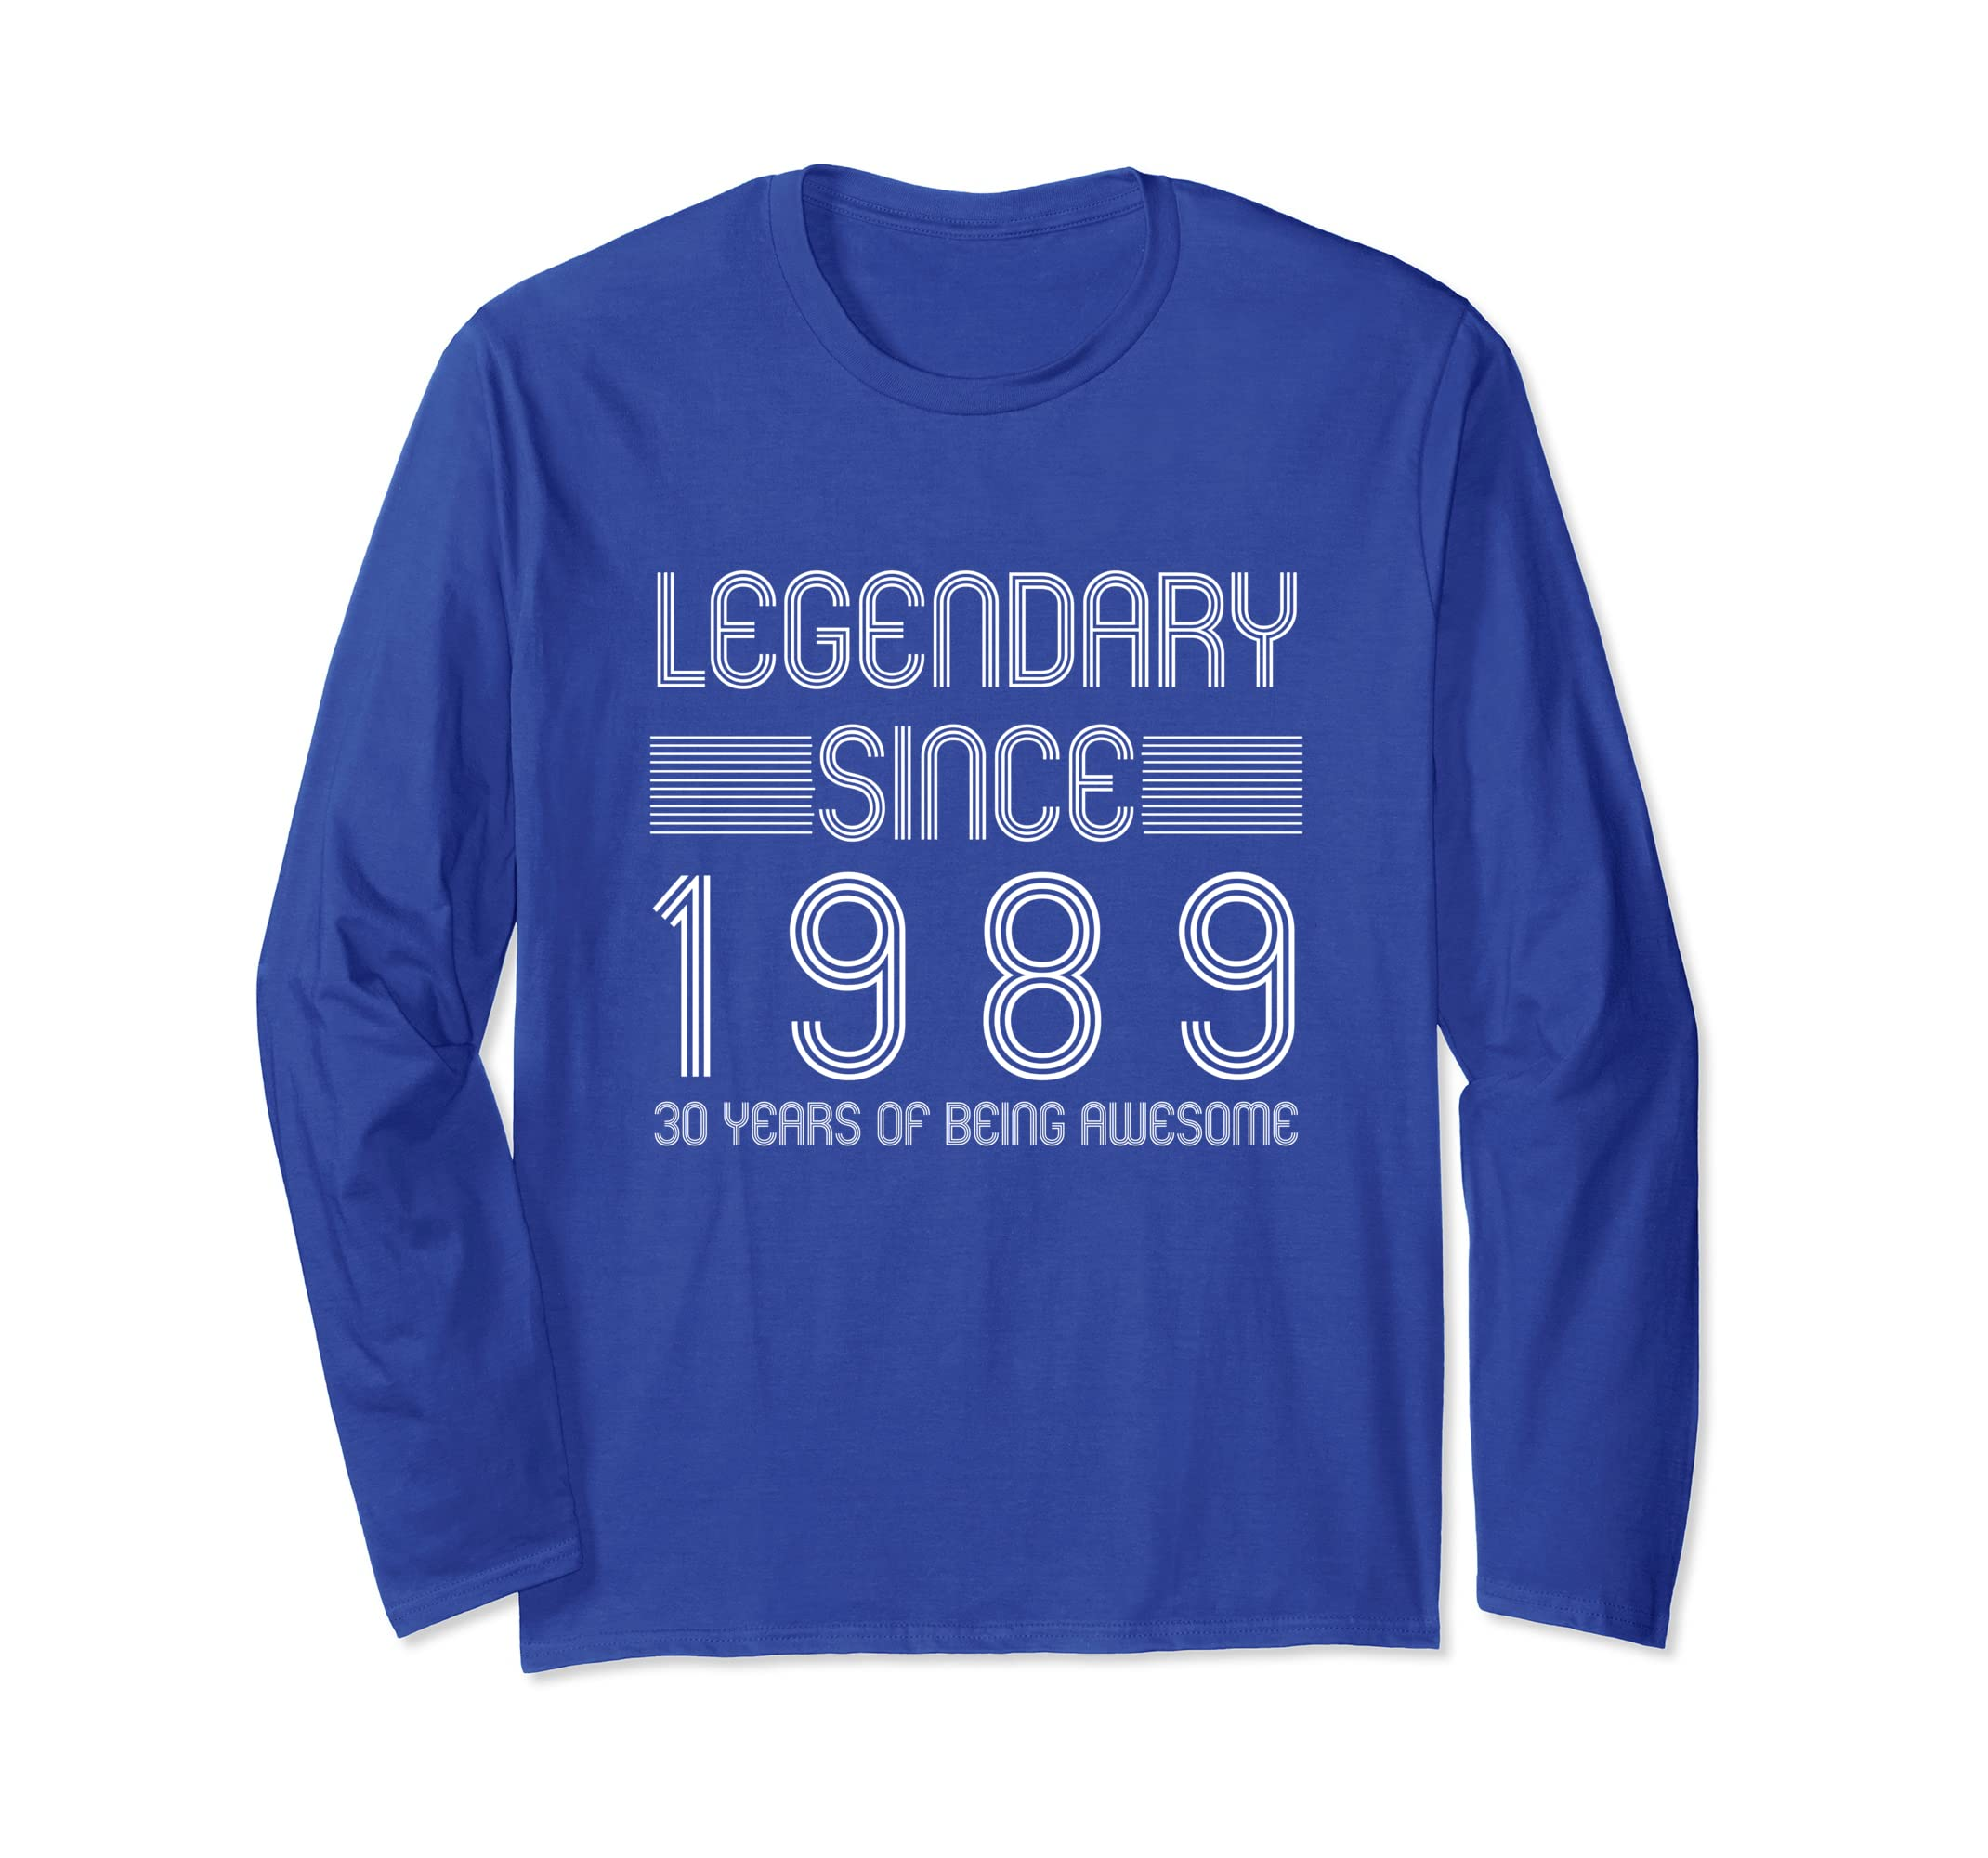 1f61b47f1 Amazon.com: 30th Birthday Long Sleeve Shirt - 30 Years Of Being Awesome:  Clothing